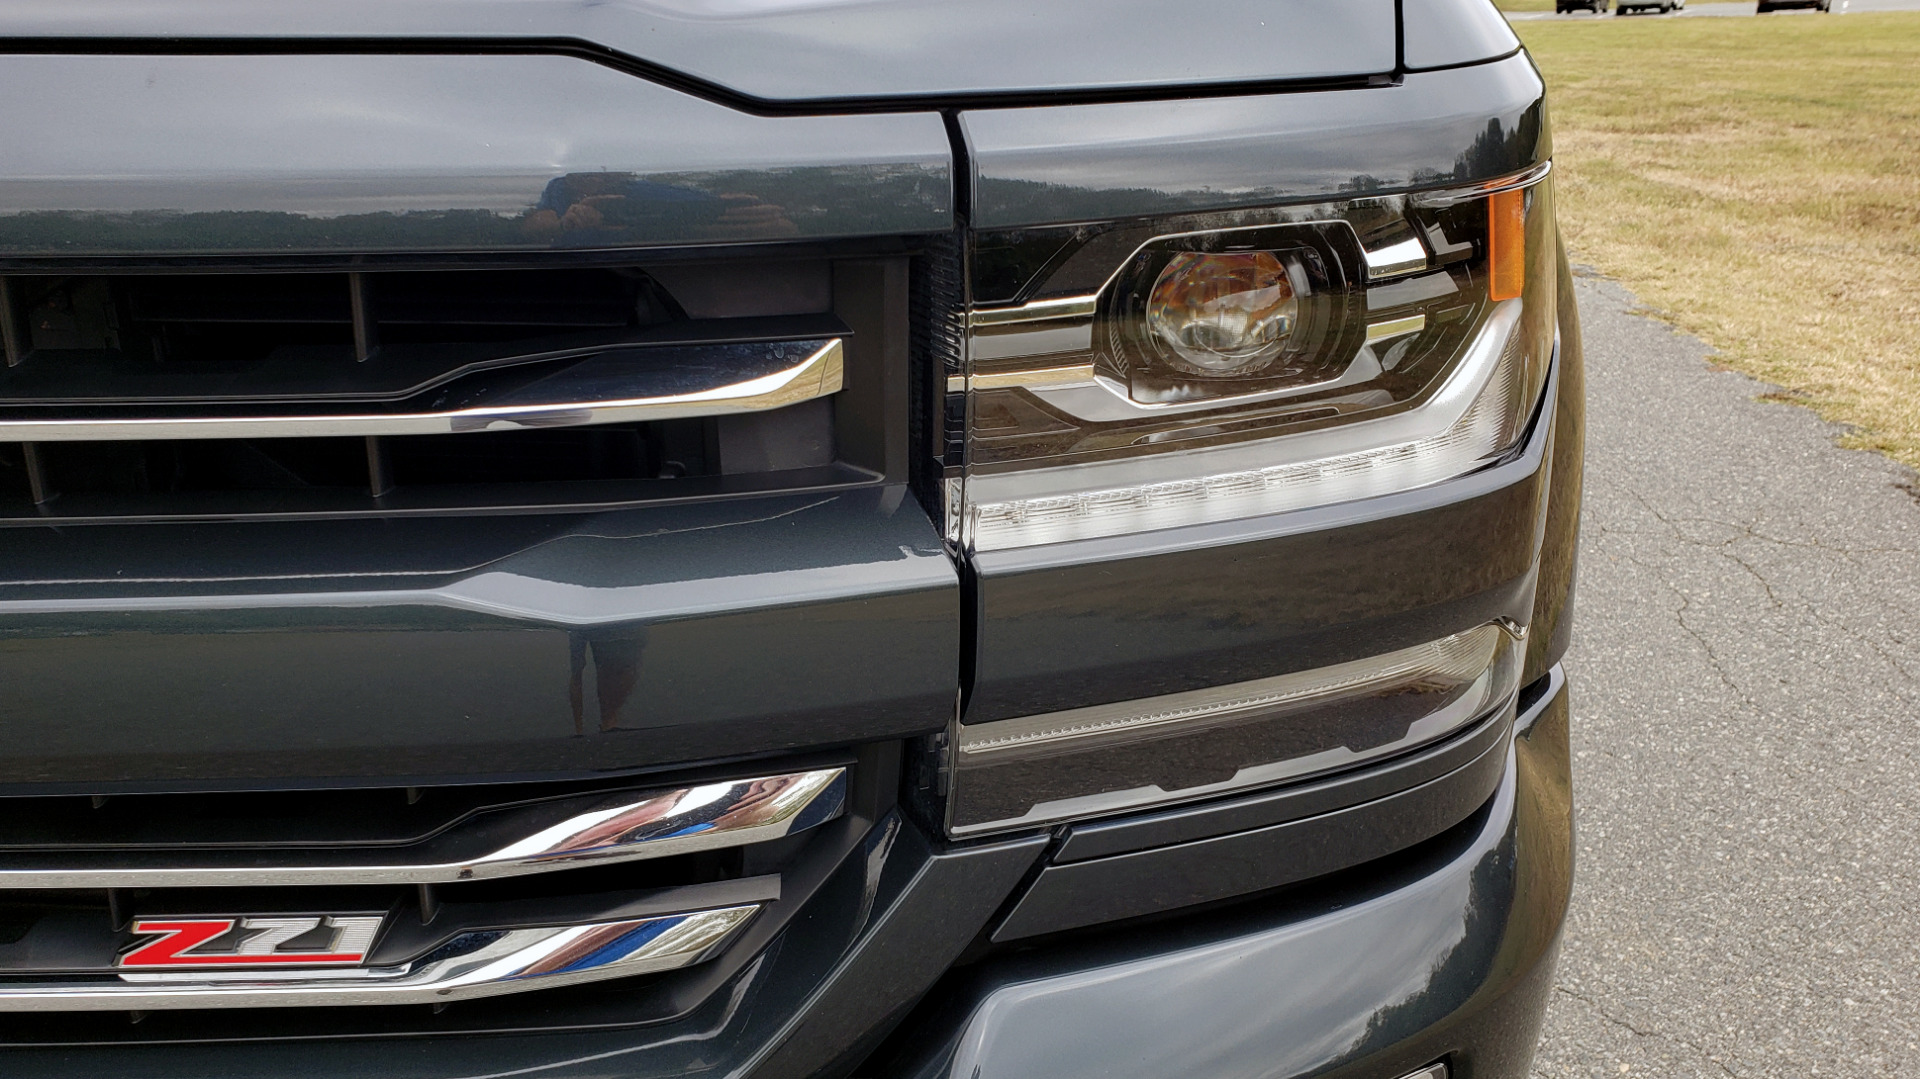 Used 2017 Chevrolet SILVERADO 1500 LTZ 4WD / NAV / BOSE / LEATHER / CAMERA / LOADED for sale Sold at Formula Imports in Charlotte NC 28227 23